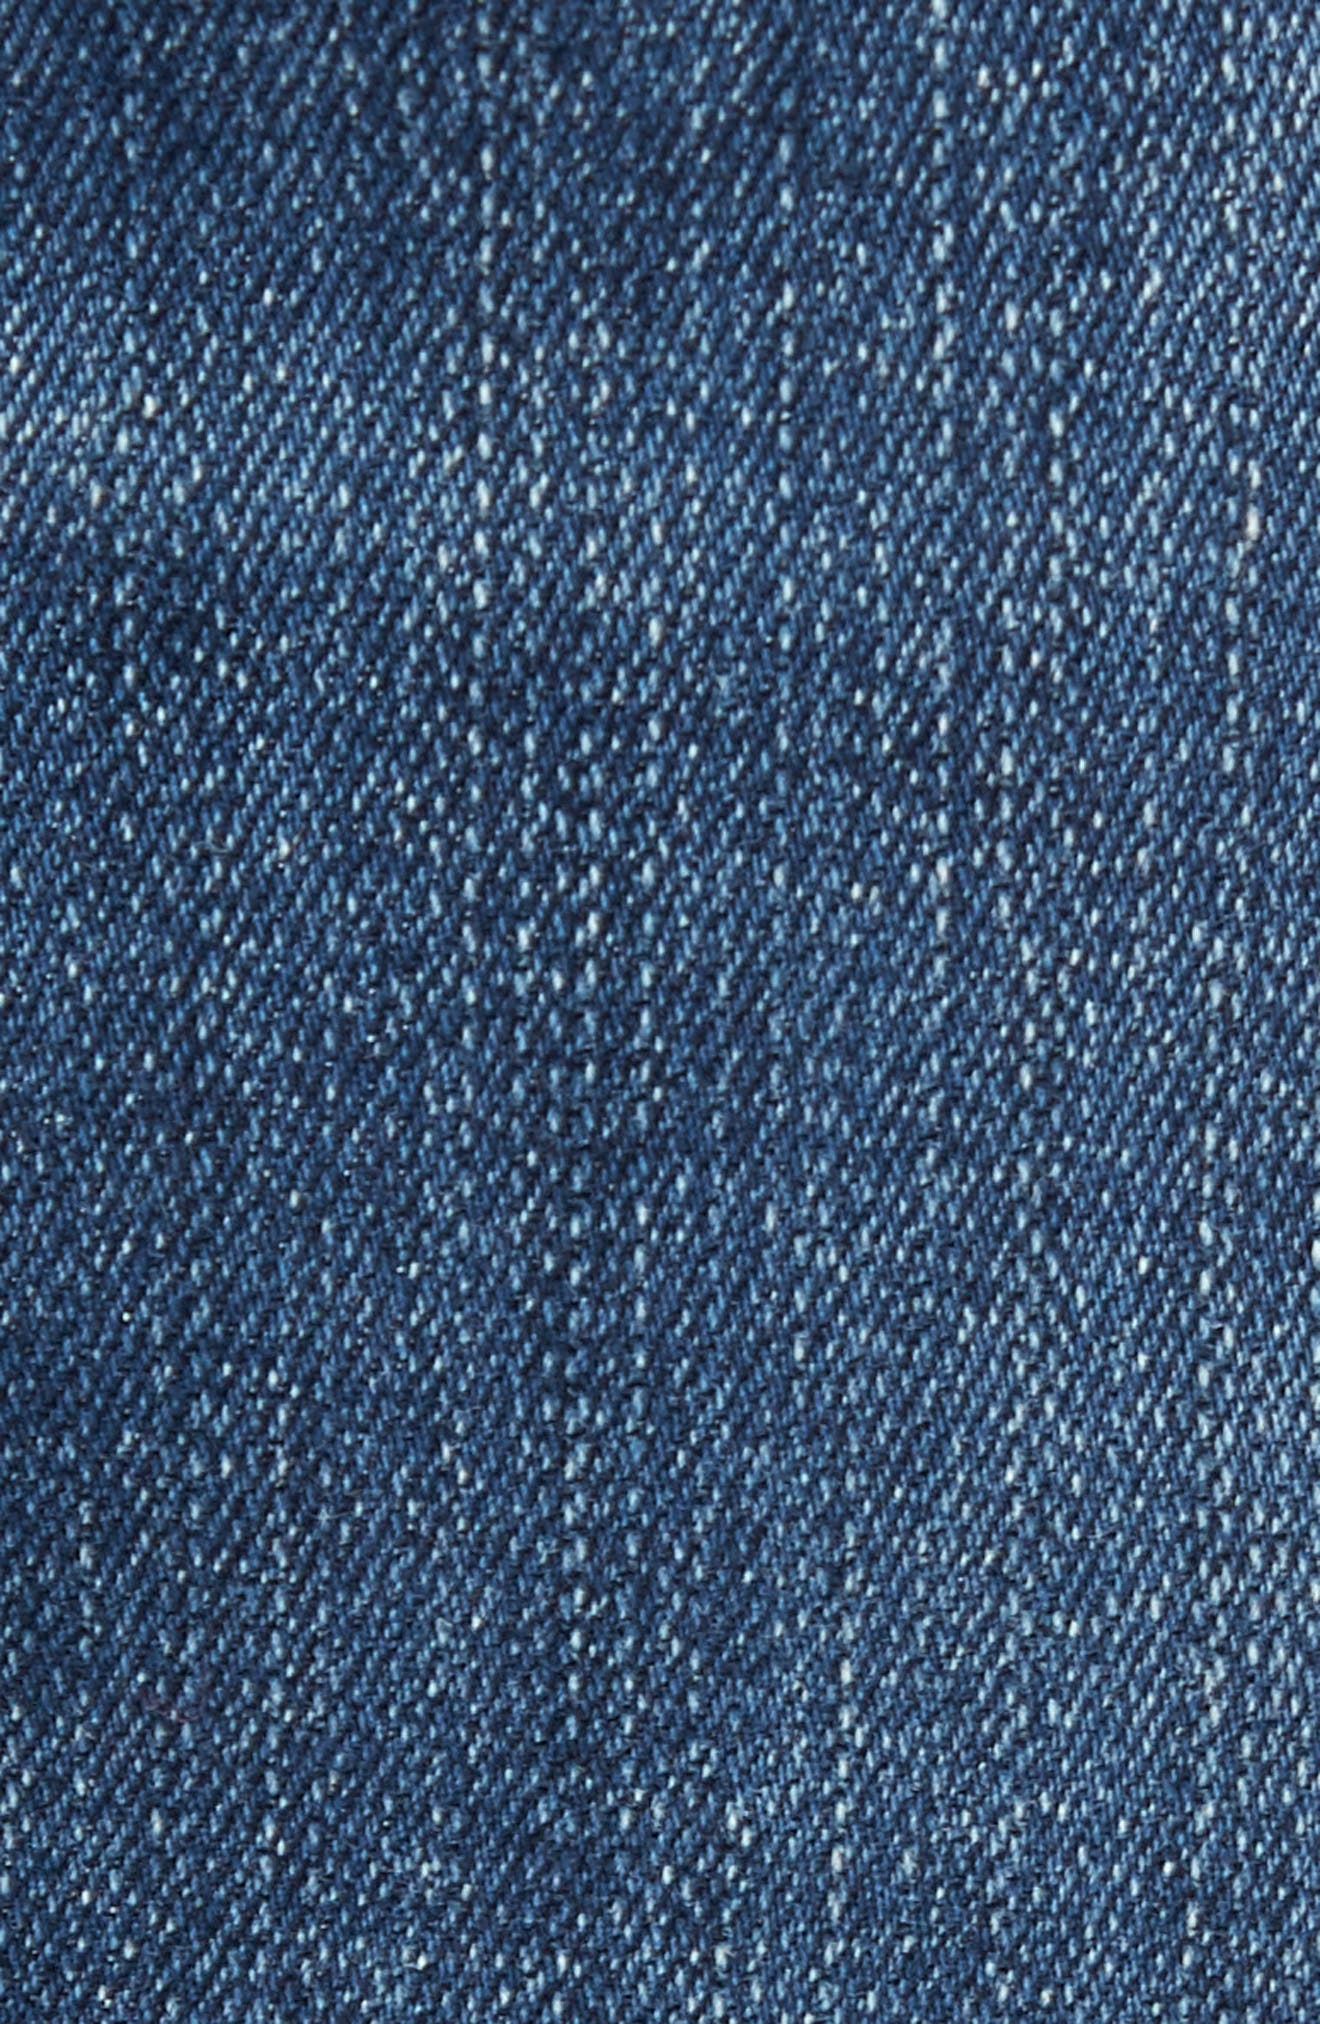 Gage Slim Straight Fit Jeans,                             Alternate thumbnail 5, color,                             427